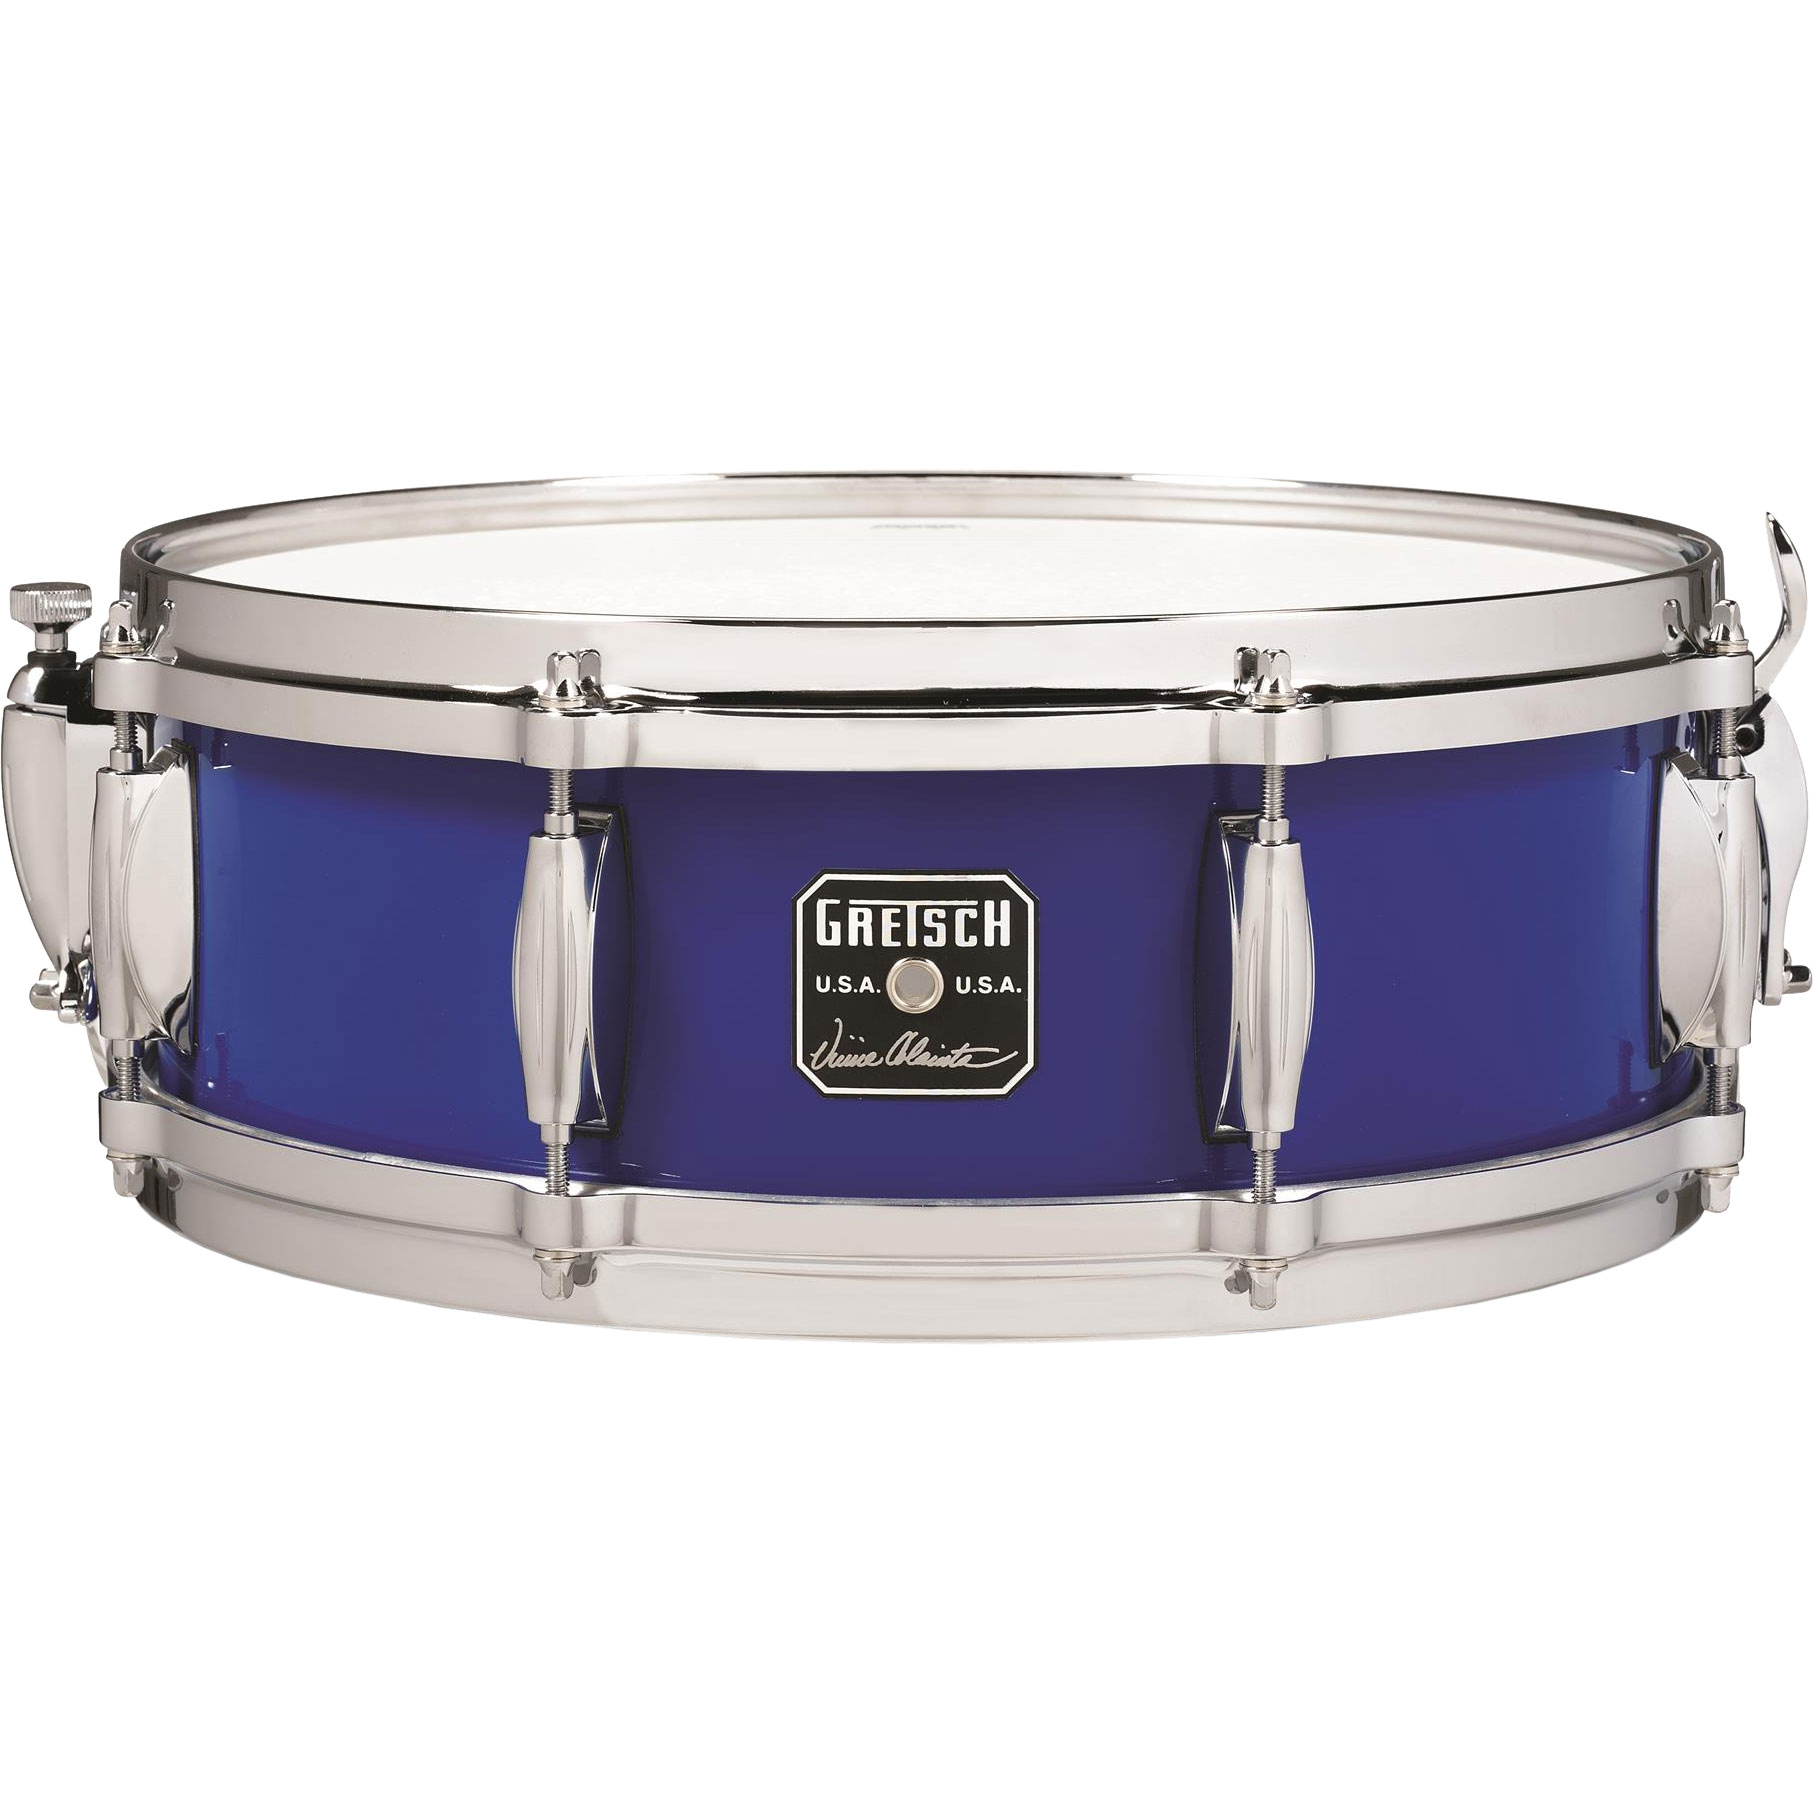 "Gretsch 5"" x 14"" USA Vinnie Colaiuta Signature Snare Drum"